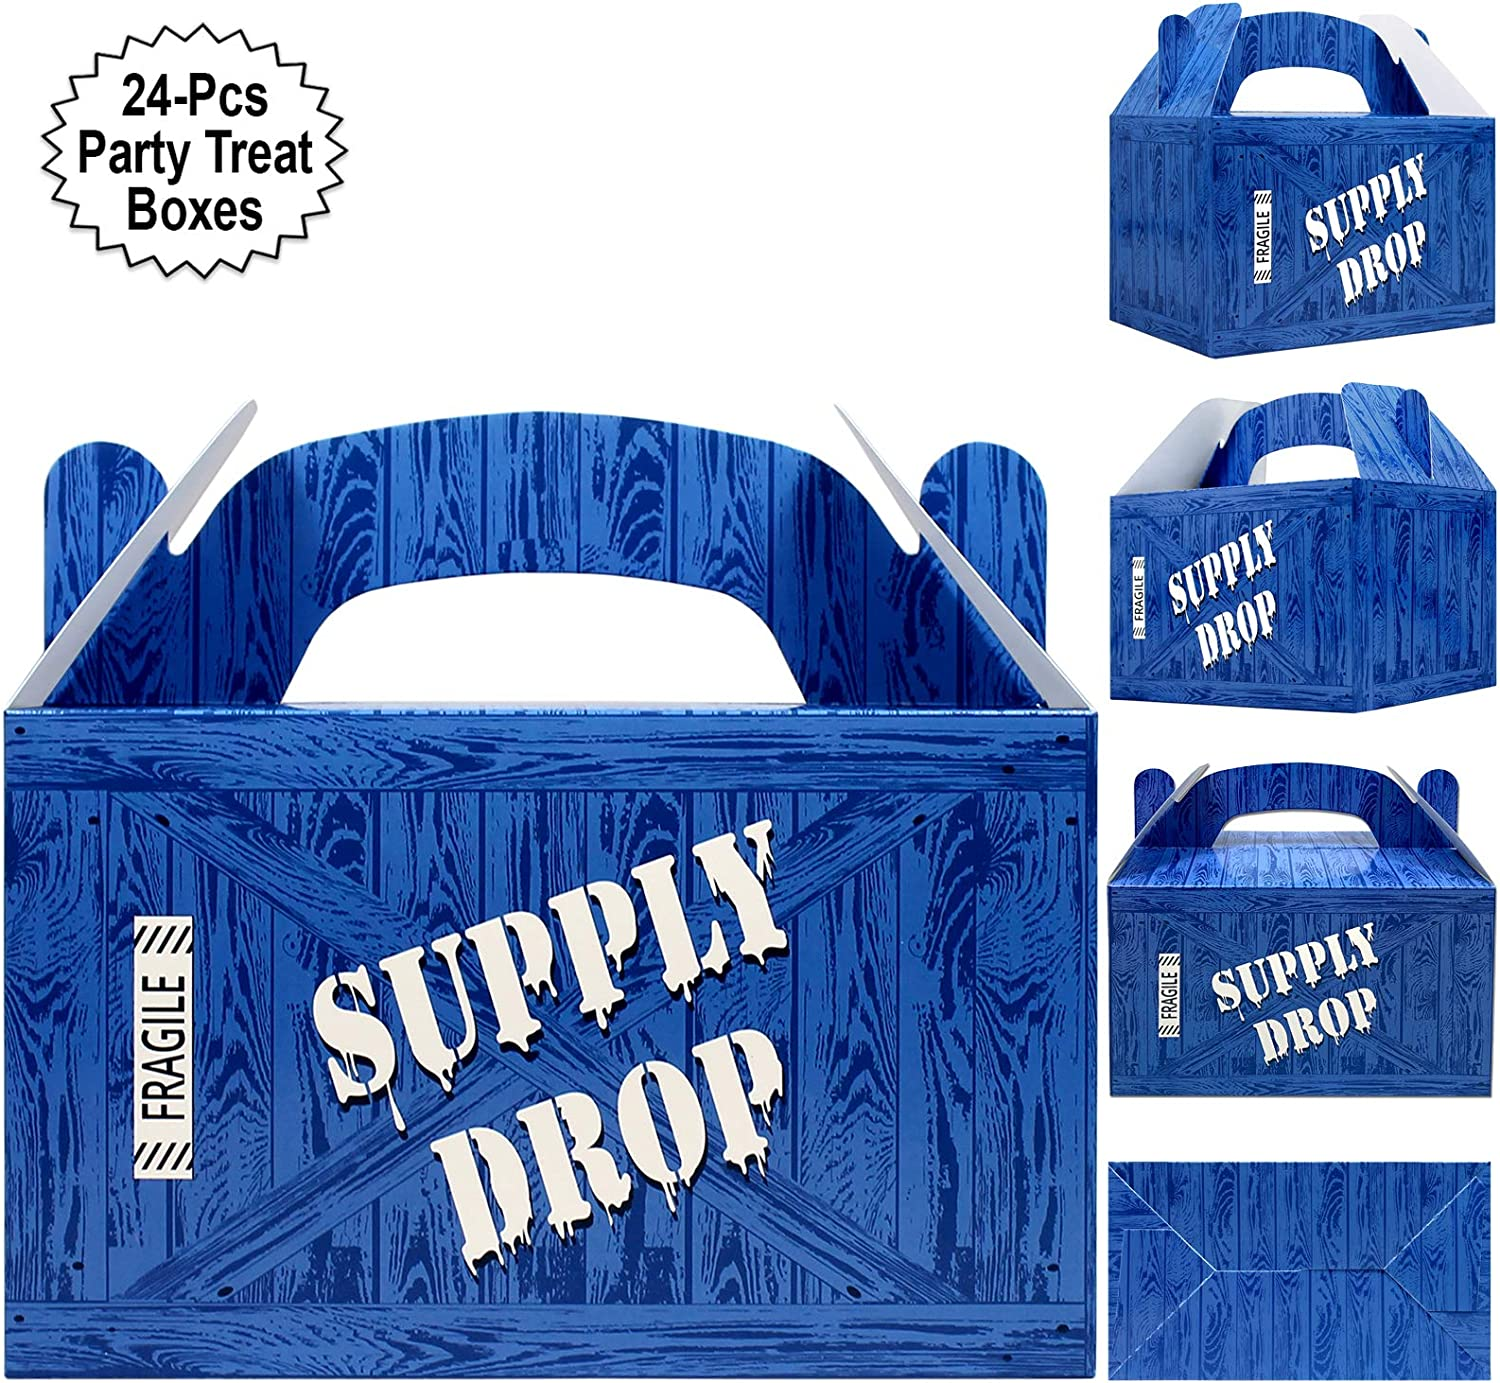 Supply Drop Favor Box | 24 Count Party Treat Boxes | Battle Gamers Goodie Loot Drop Box | Blue Crate Party Supplies Gamer Decorations